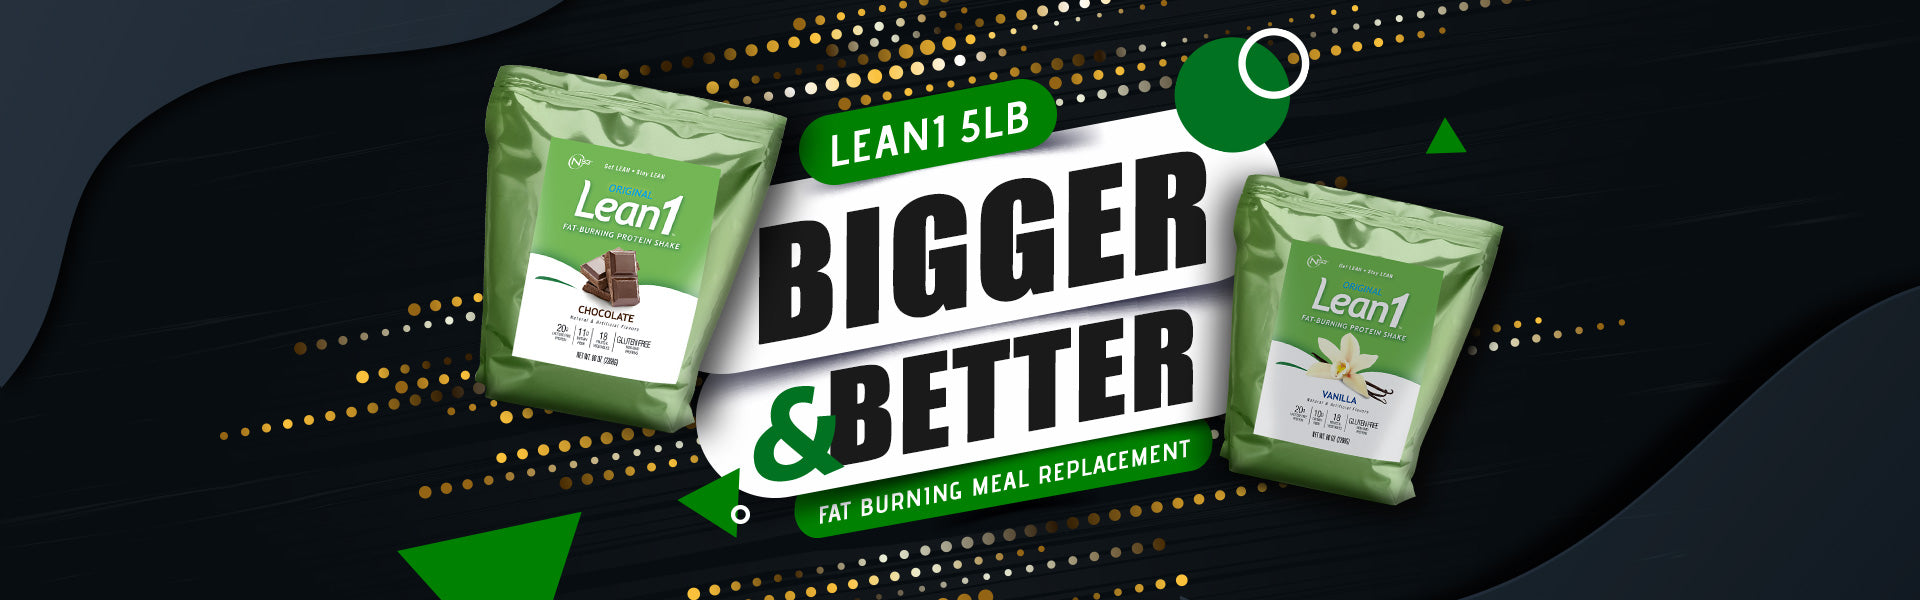 Lean1 5-lb Bigger and Better Fat Meal Replacement